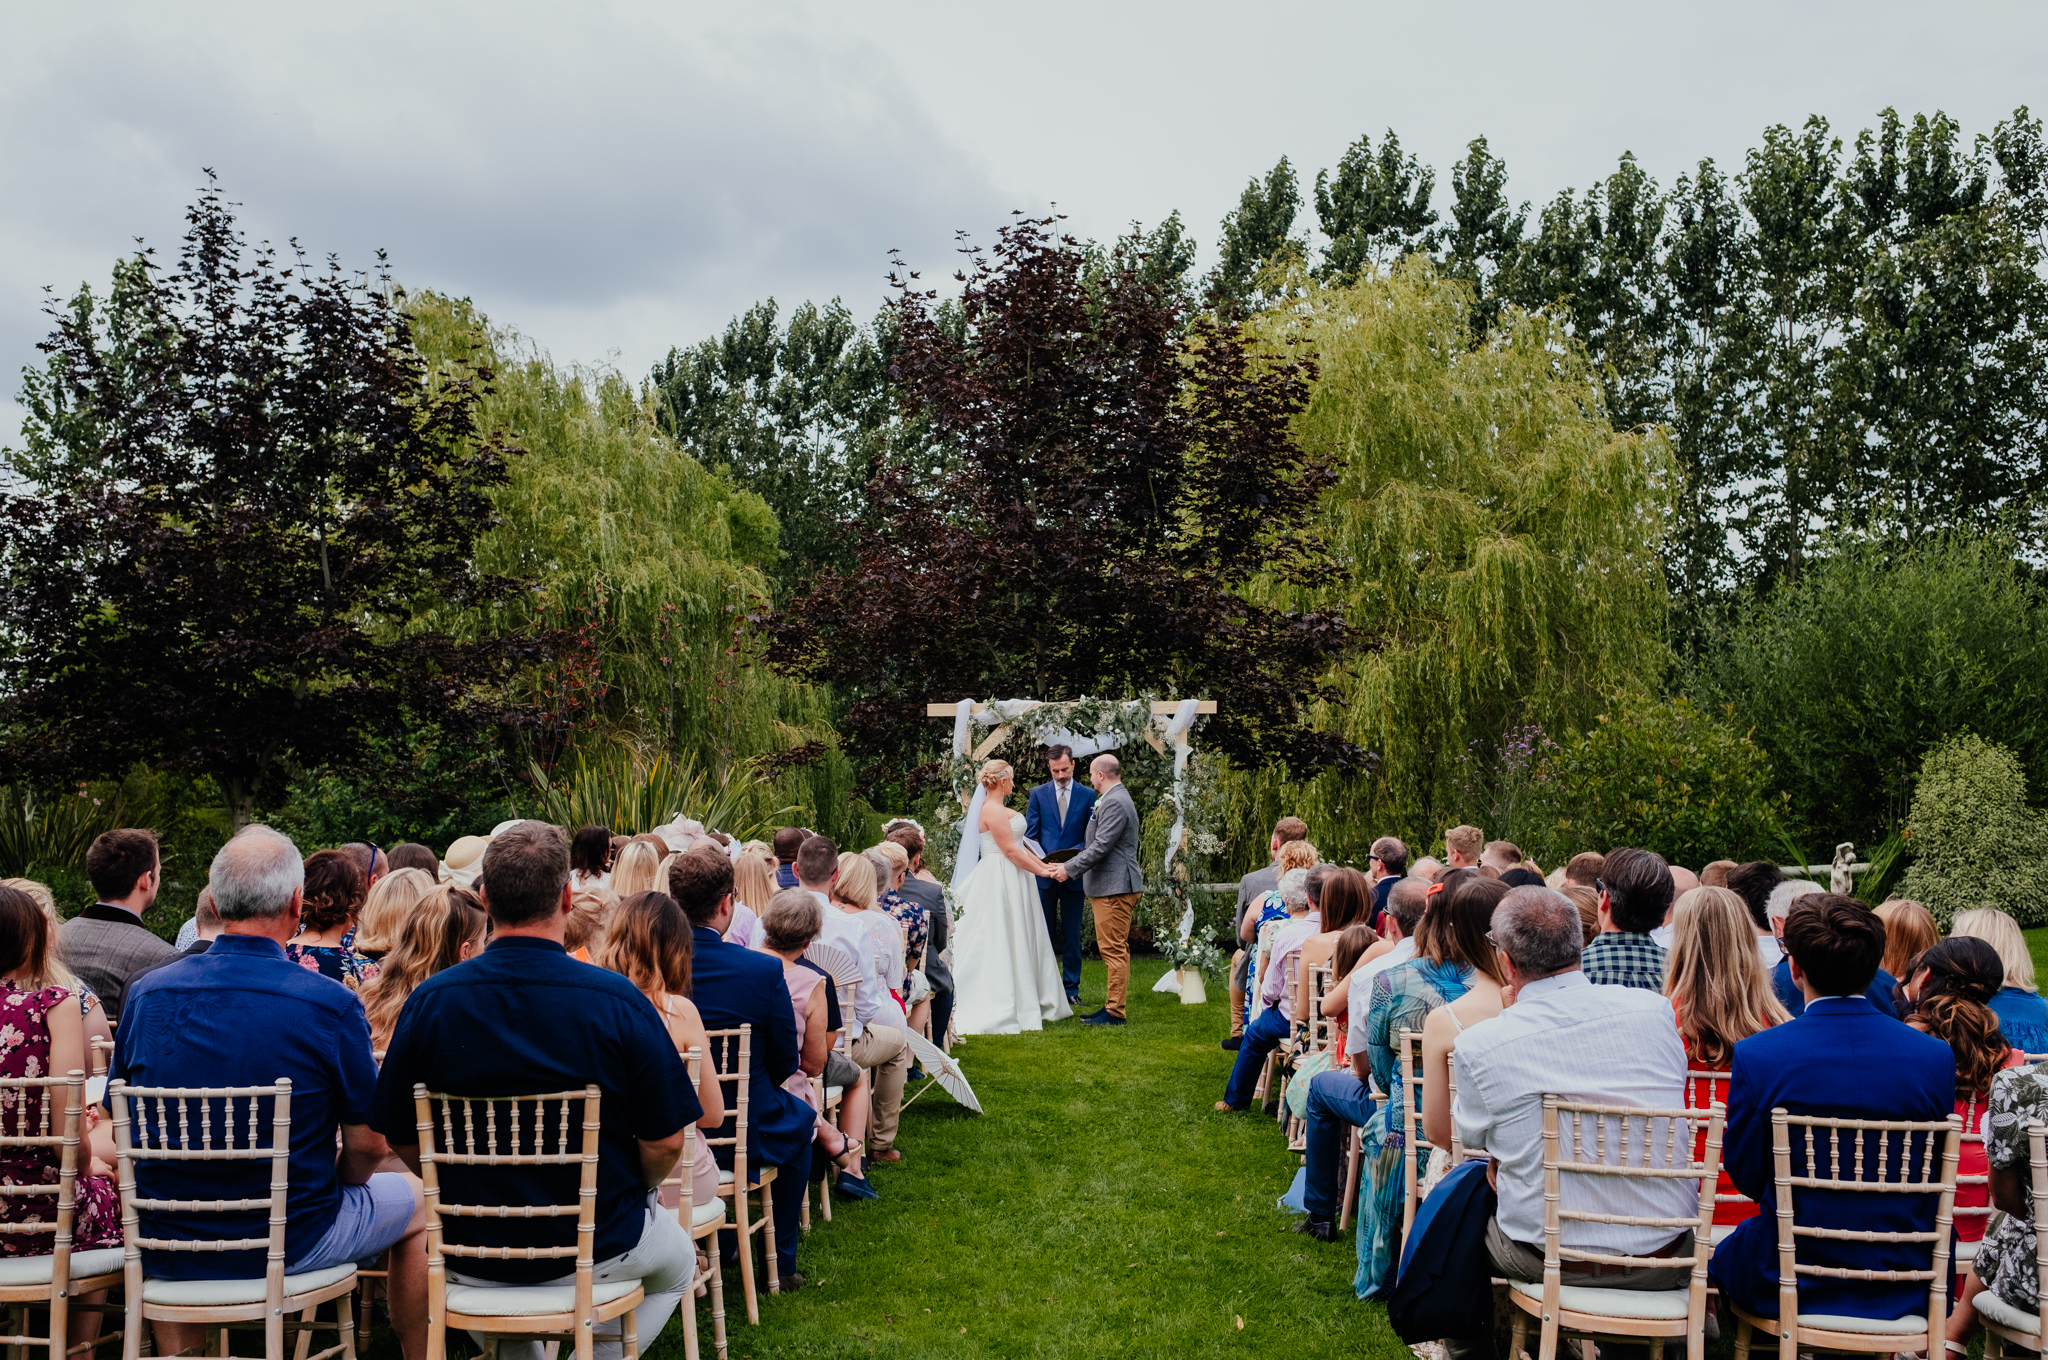 Outdoor wedding ceremony with arch at Rumbolds Farm